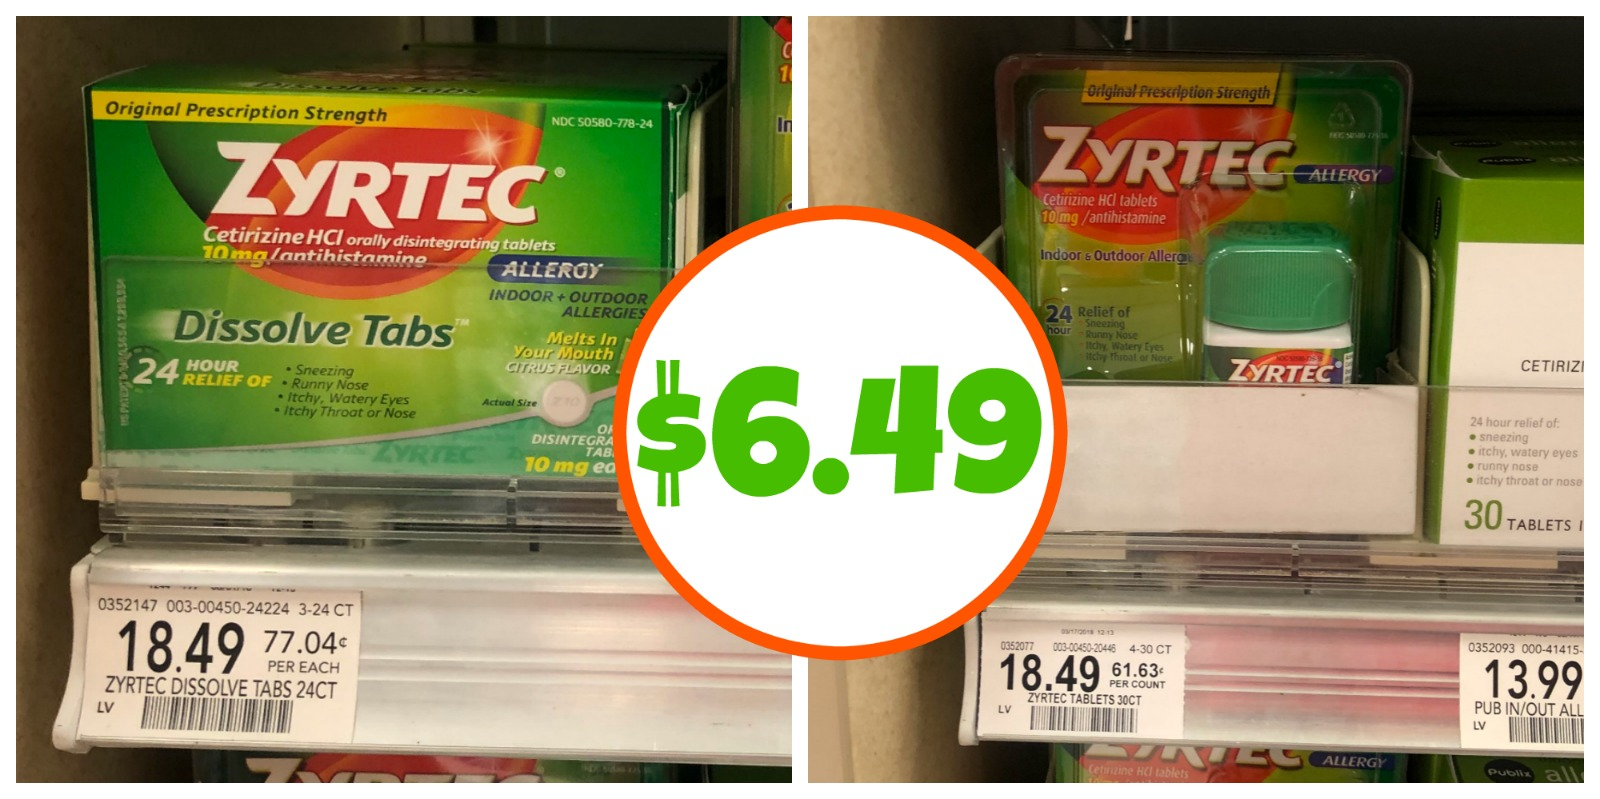 image about Zyrtec Coupon Printable referred to as Clean Zyrtec Discount coupons For The Future Publix Sale - Conserve $12